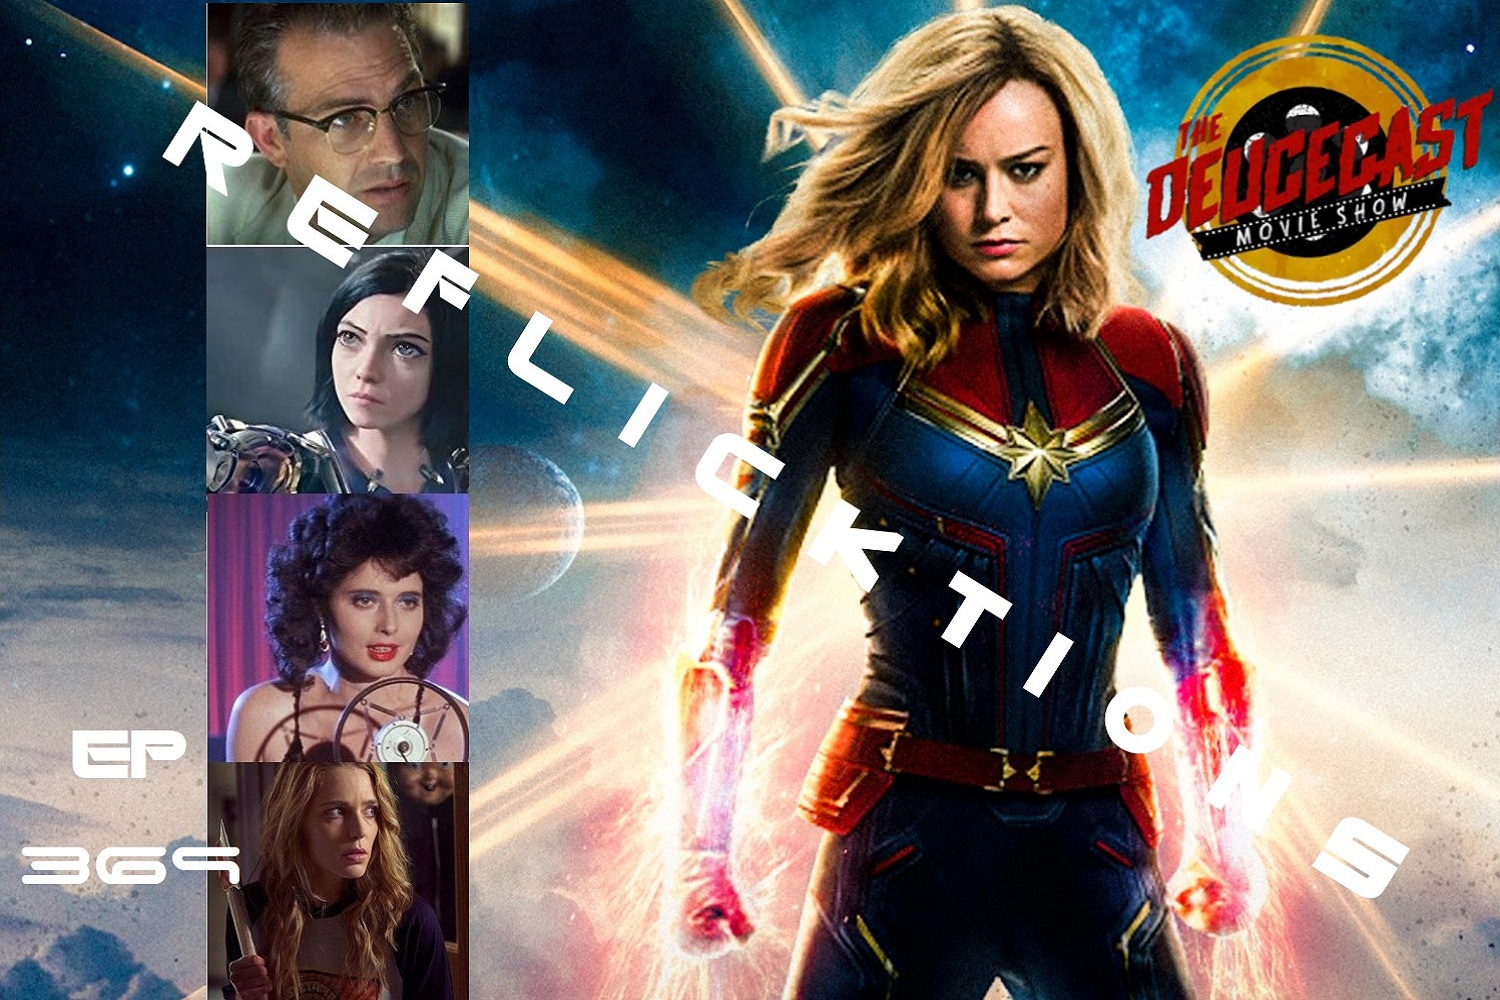 The Deucecast Movie Show #369: Marvel-ous ReFlicktions